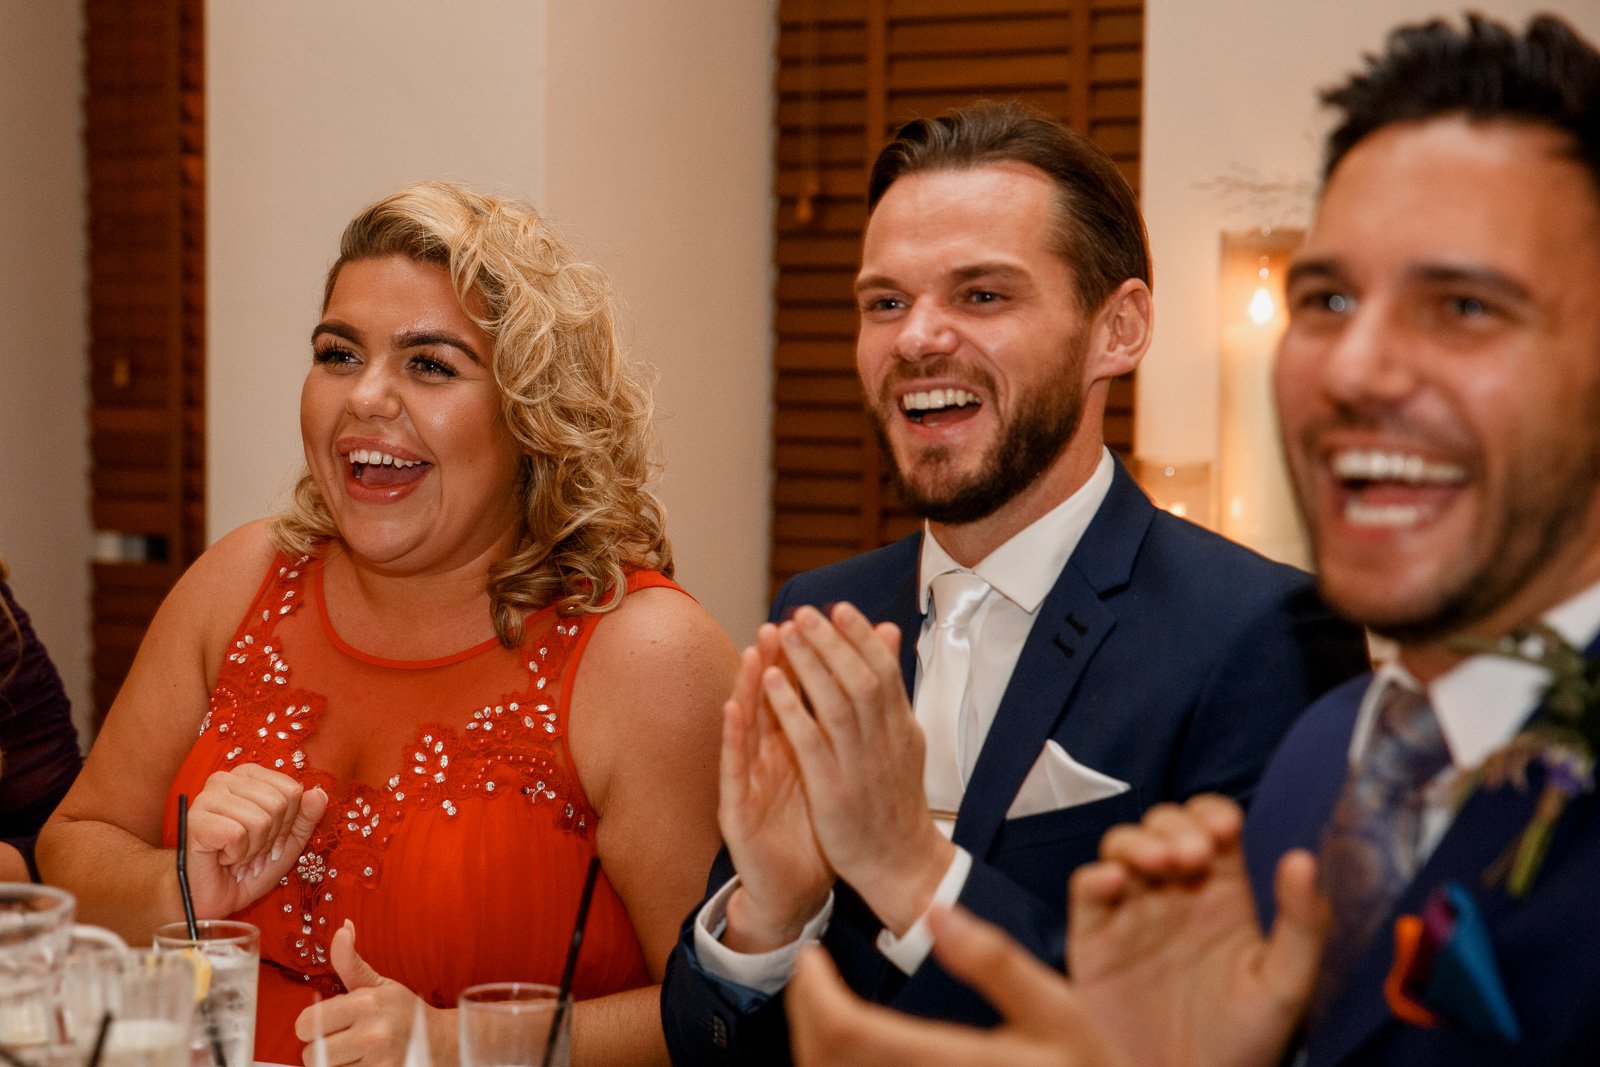 guests laughing at wedding speeches